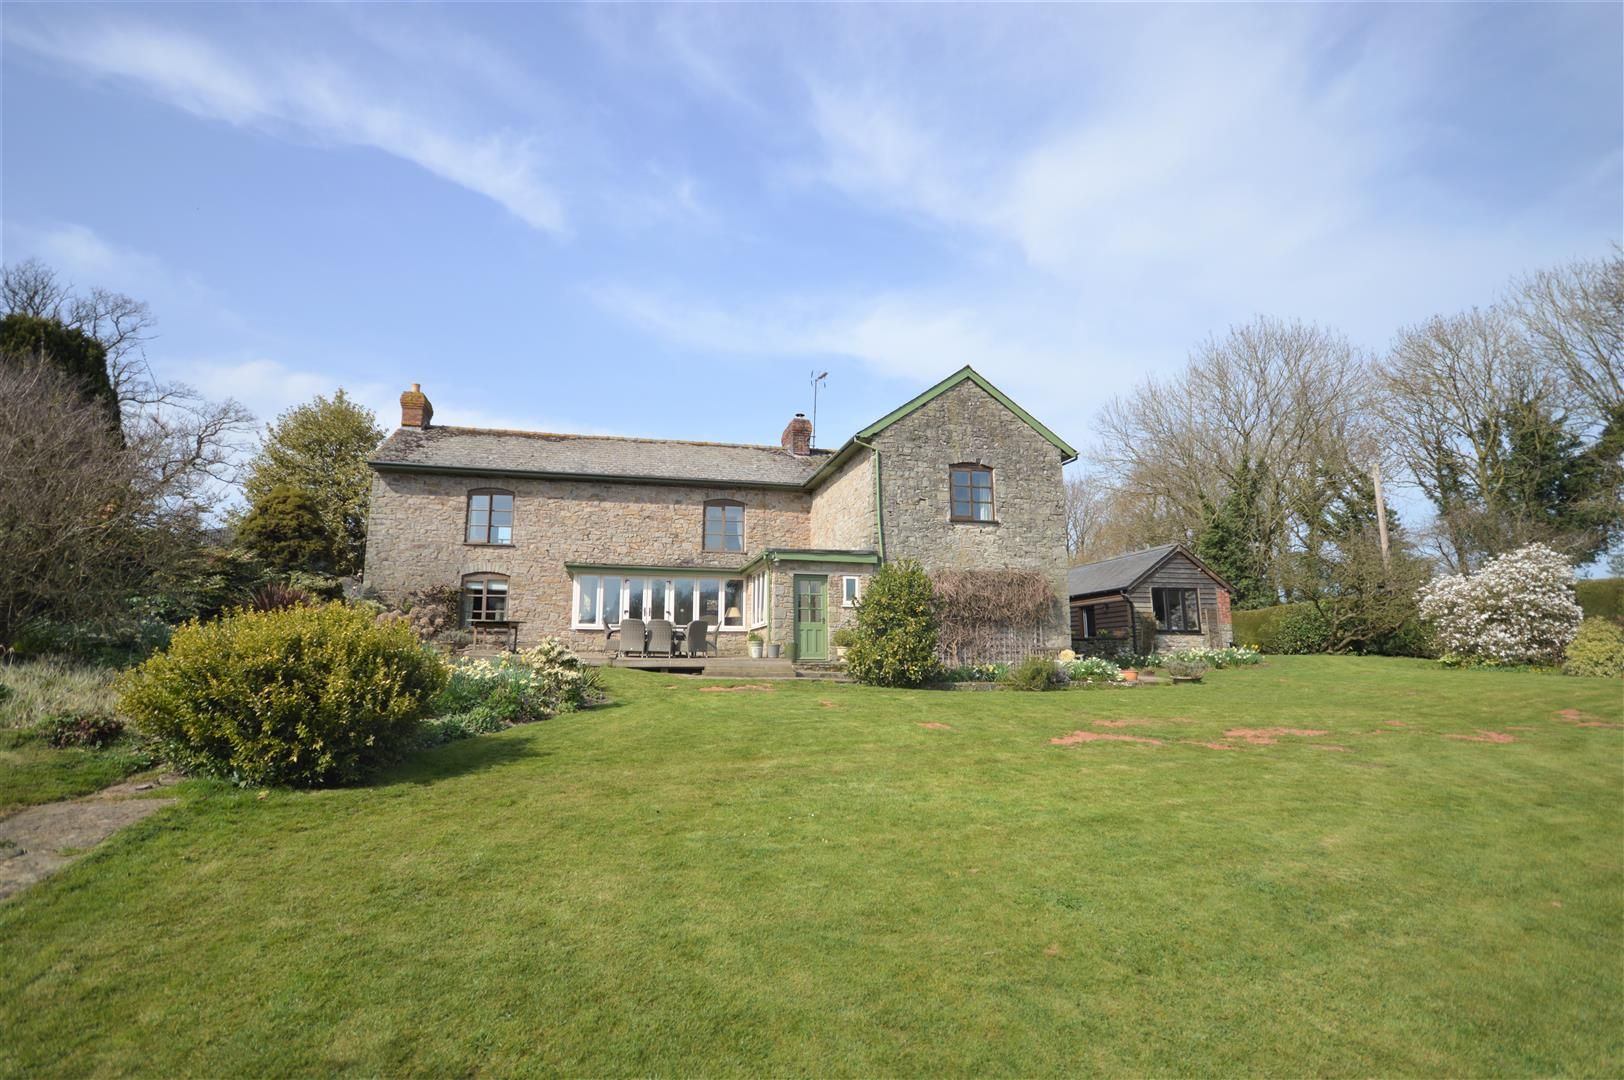 4 bed country house for sale in Lyonshall, HR5